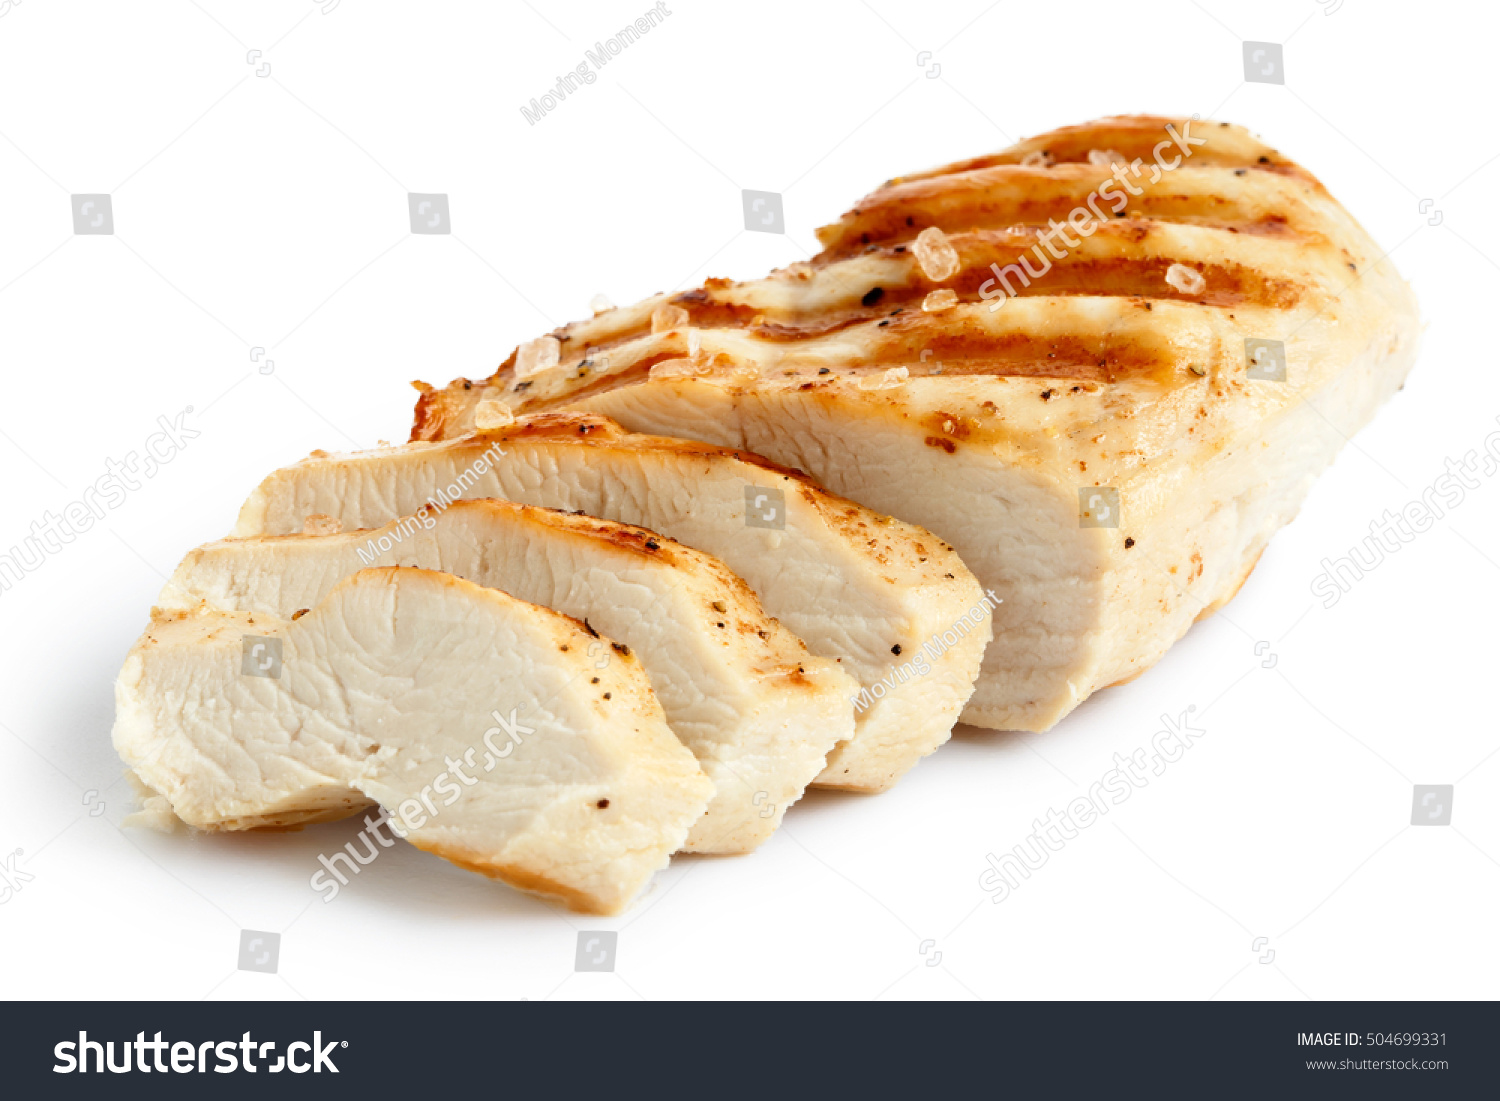 Partially sliced grilled chicken breast with black pepper and rock salt isolated on white. #504699331